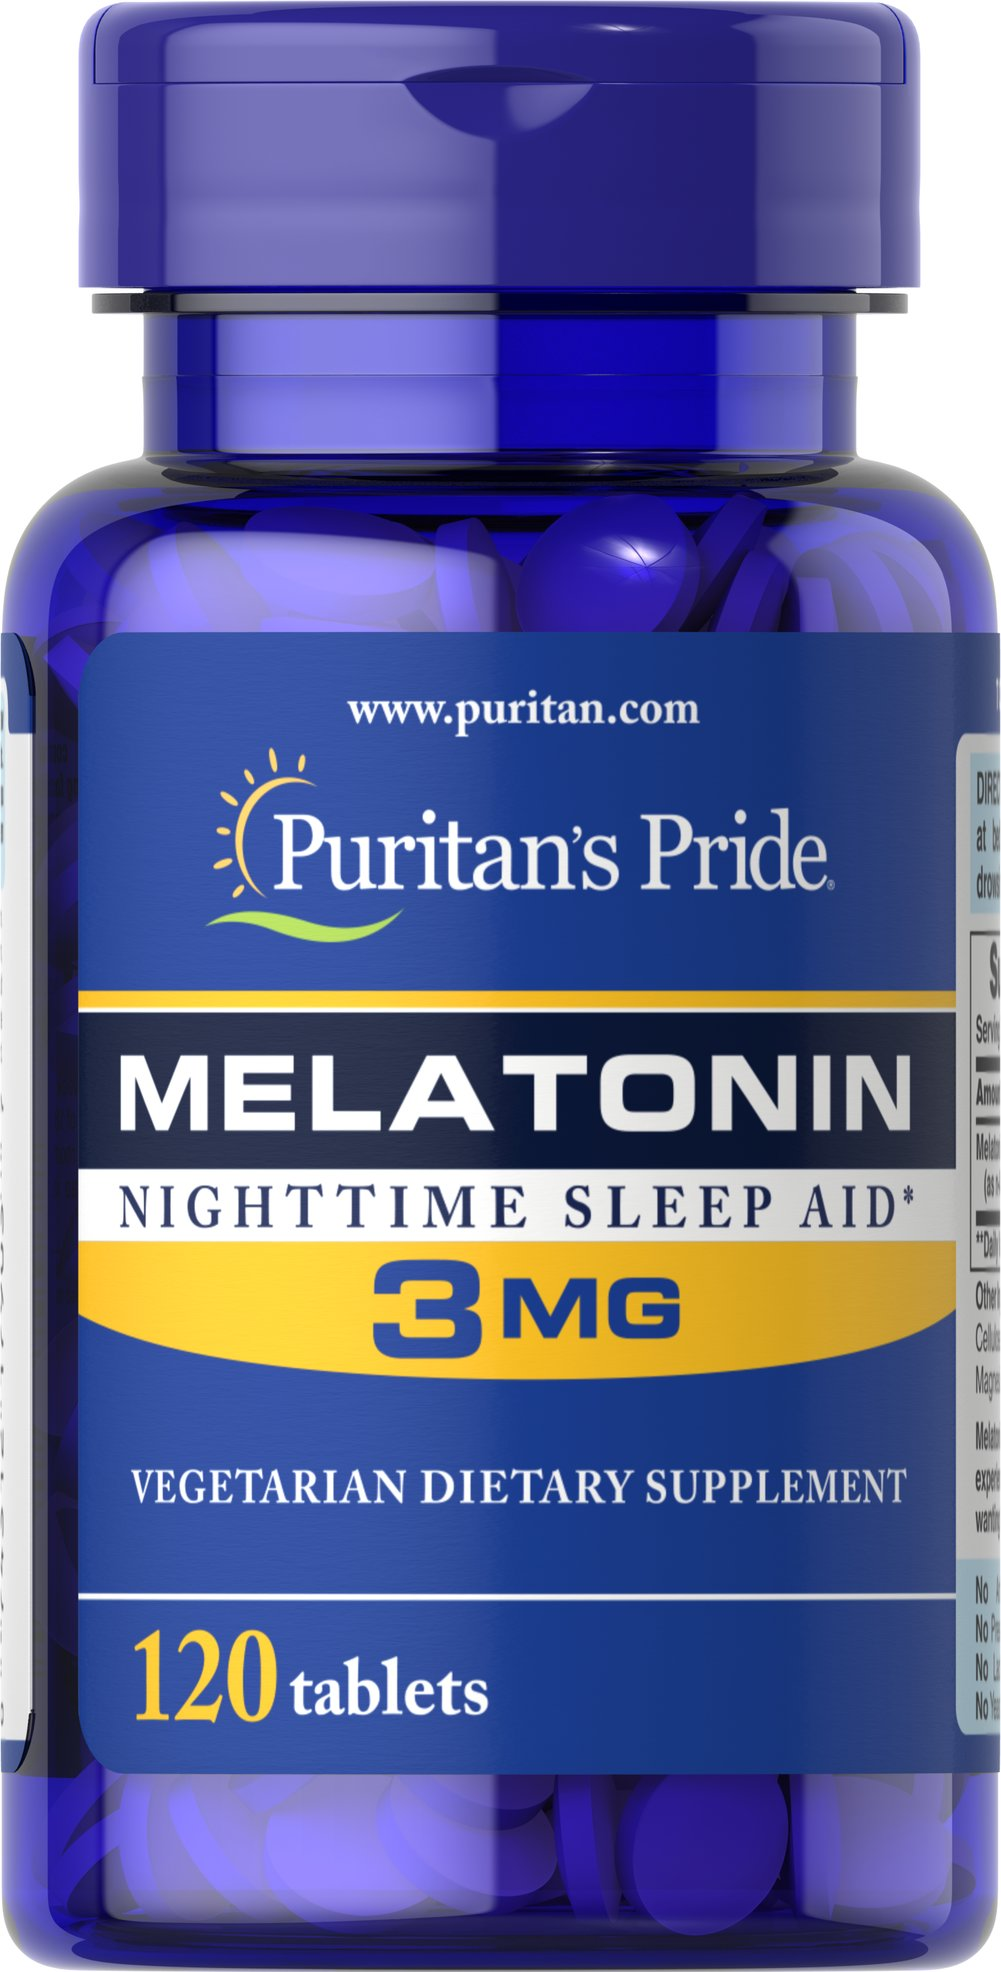 Melatonin 3 mg  120 Tablets 3 mg $5.99